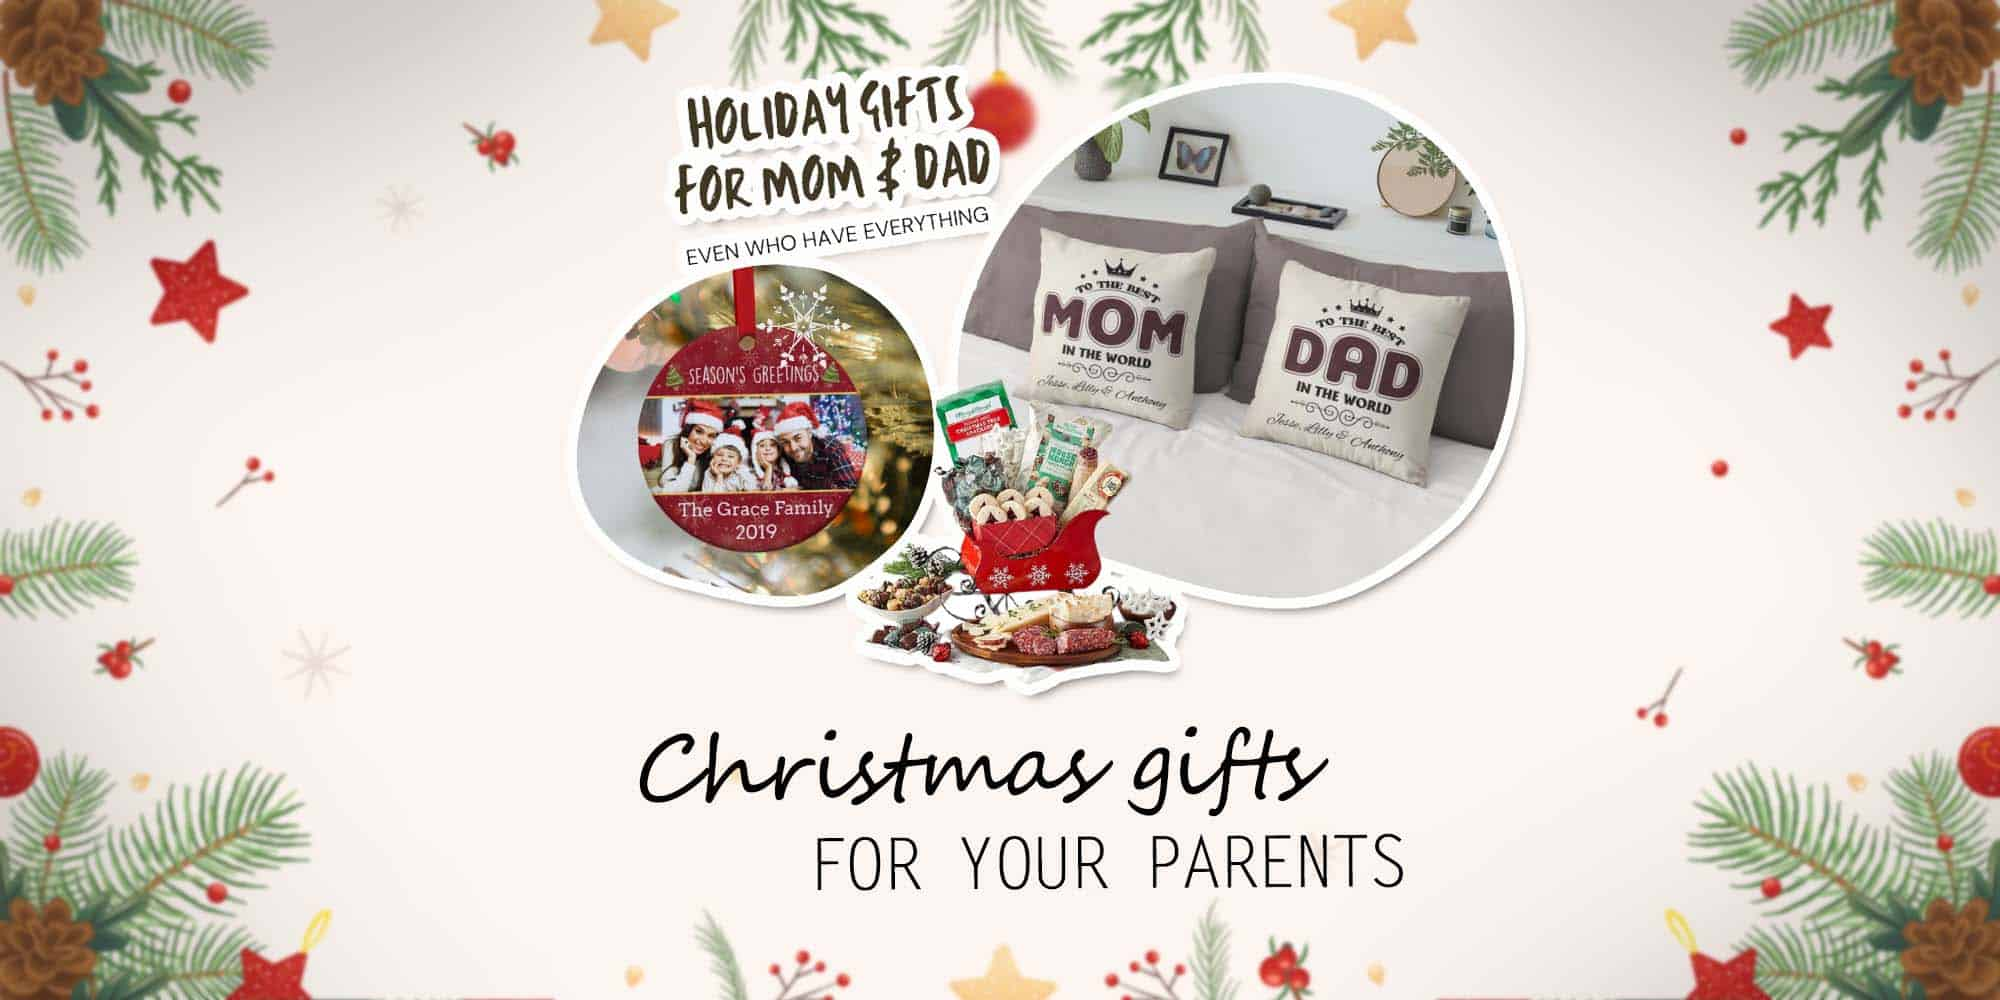 38 Best Christmas Gift Ideas for Parents on This Holiday (2021)